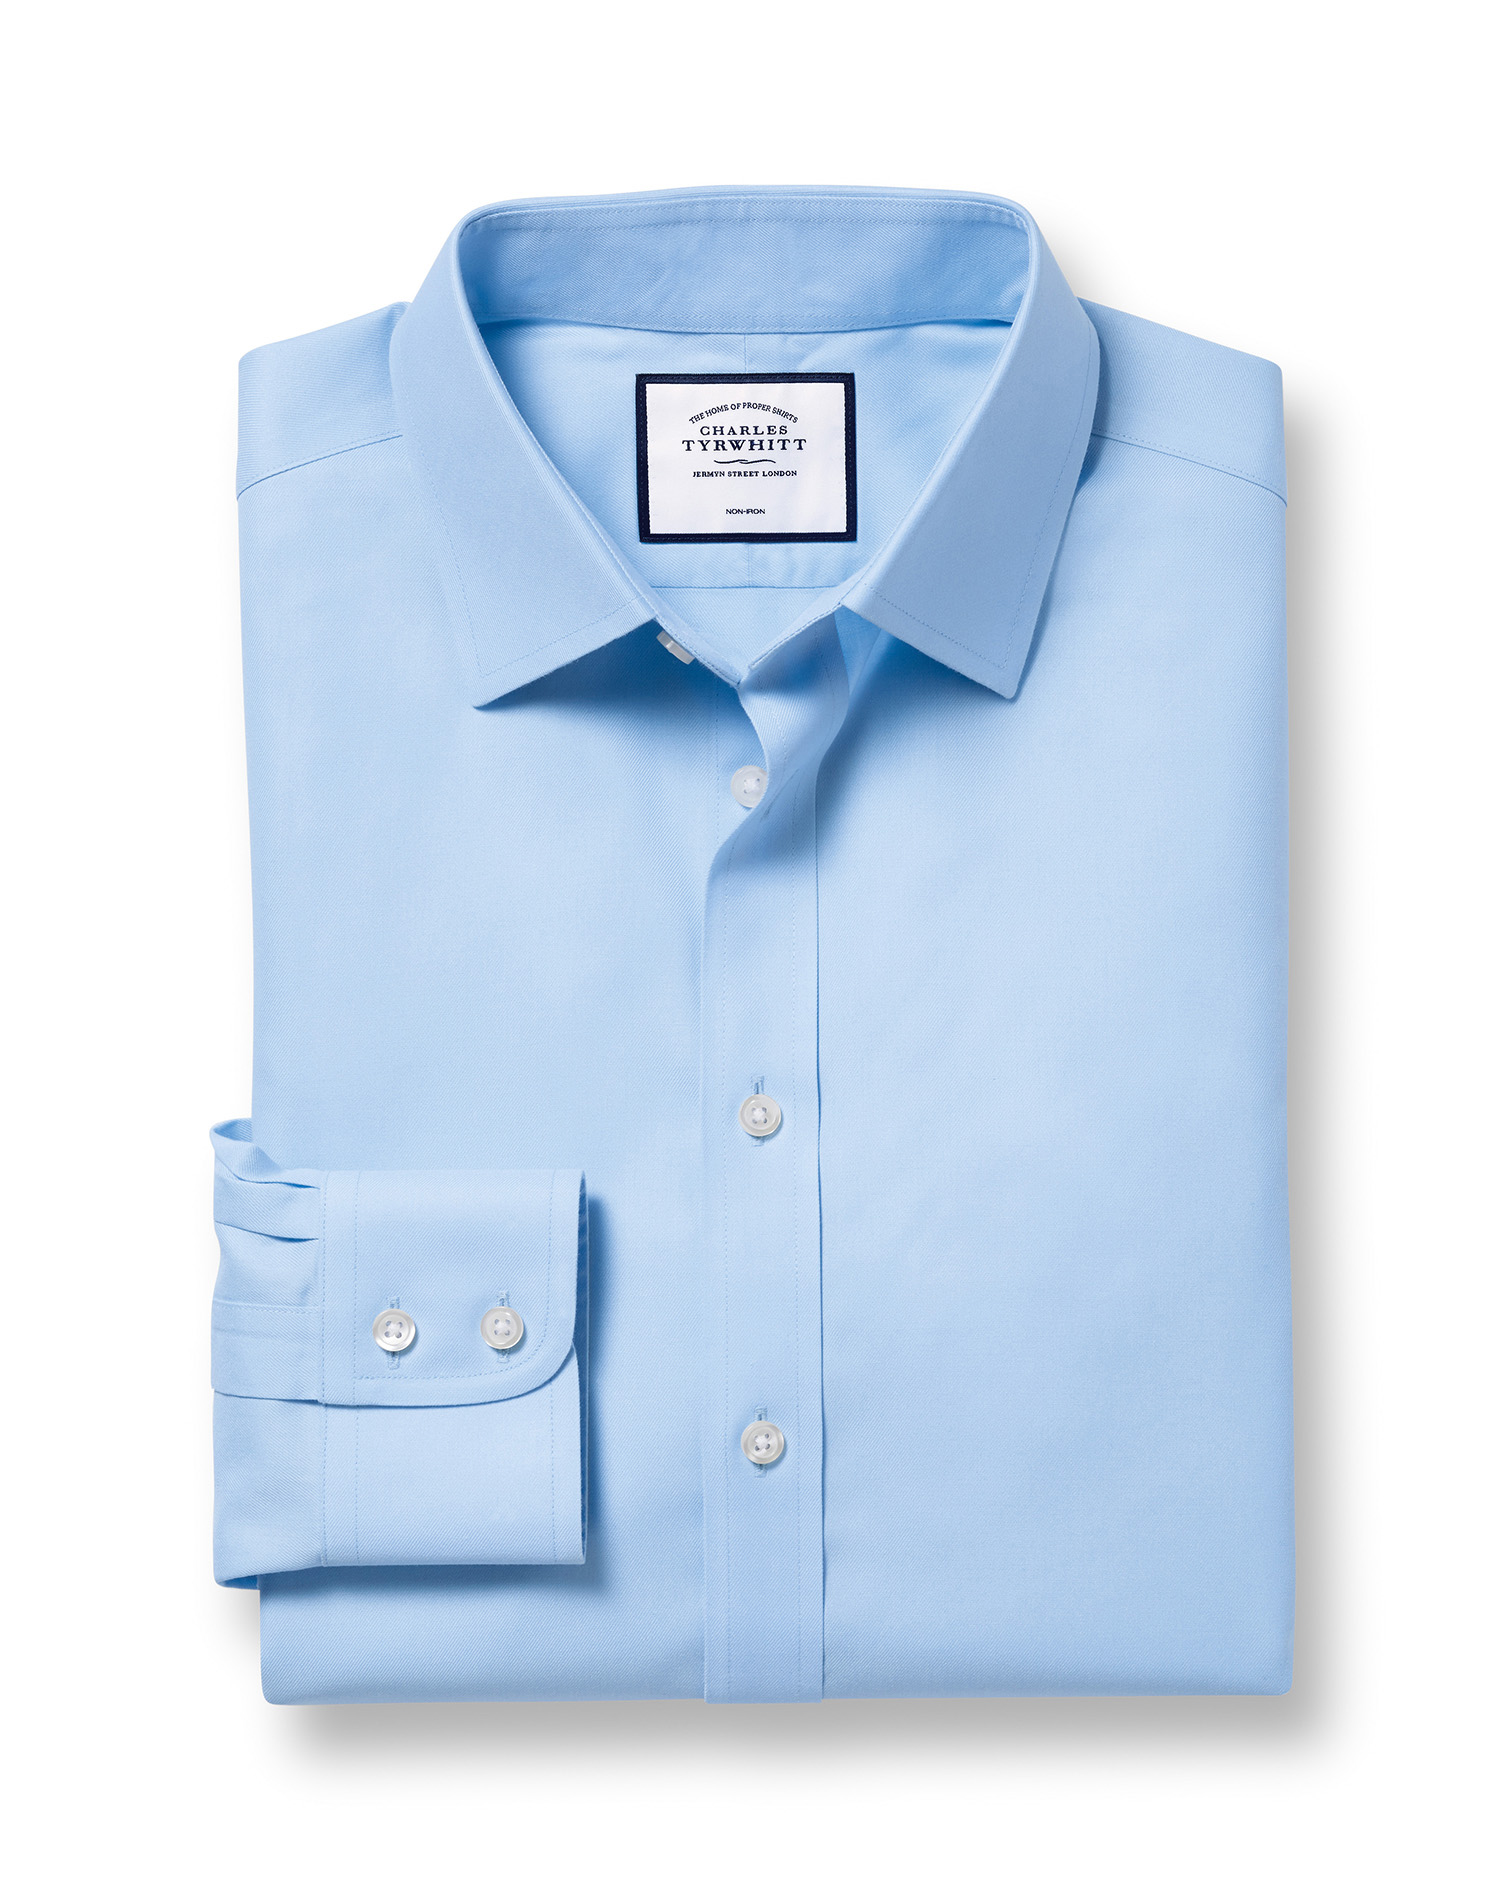 Slim Fit Sky Blue Non-Iron Twill Cotton Formal Shirt Double Cuff Size 15.5/32 by Charles Tyrwhitt